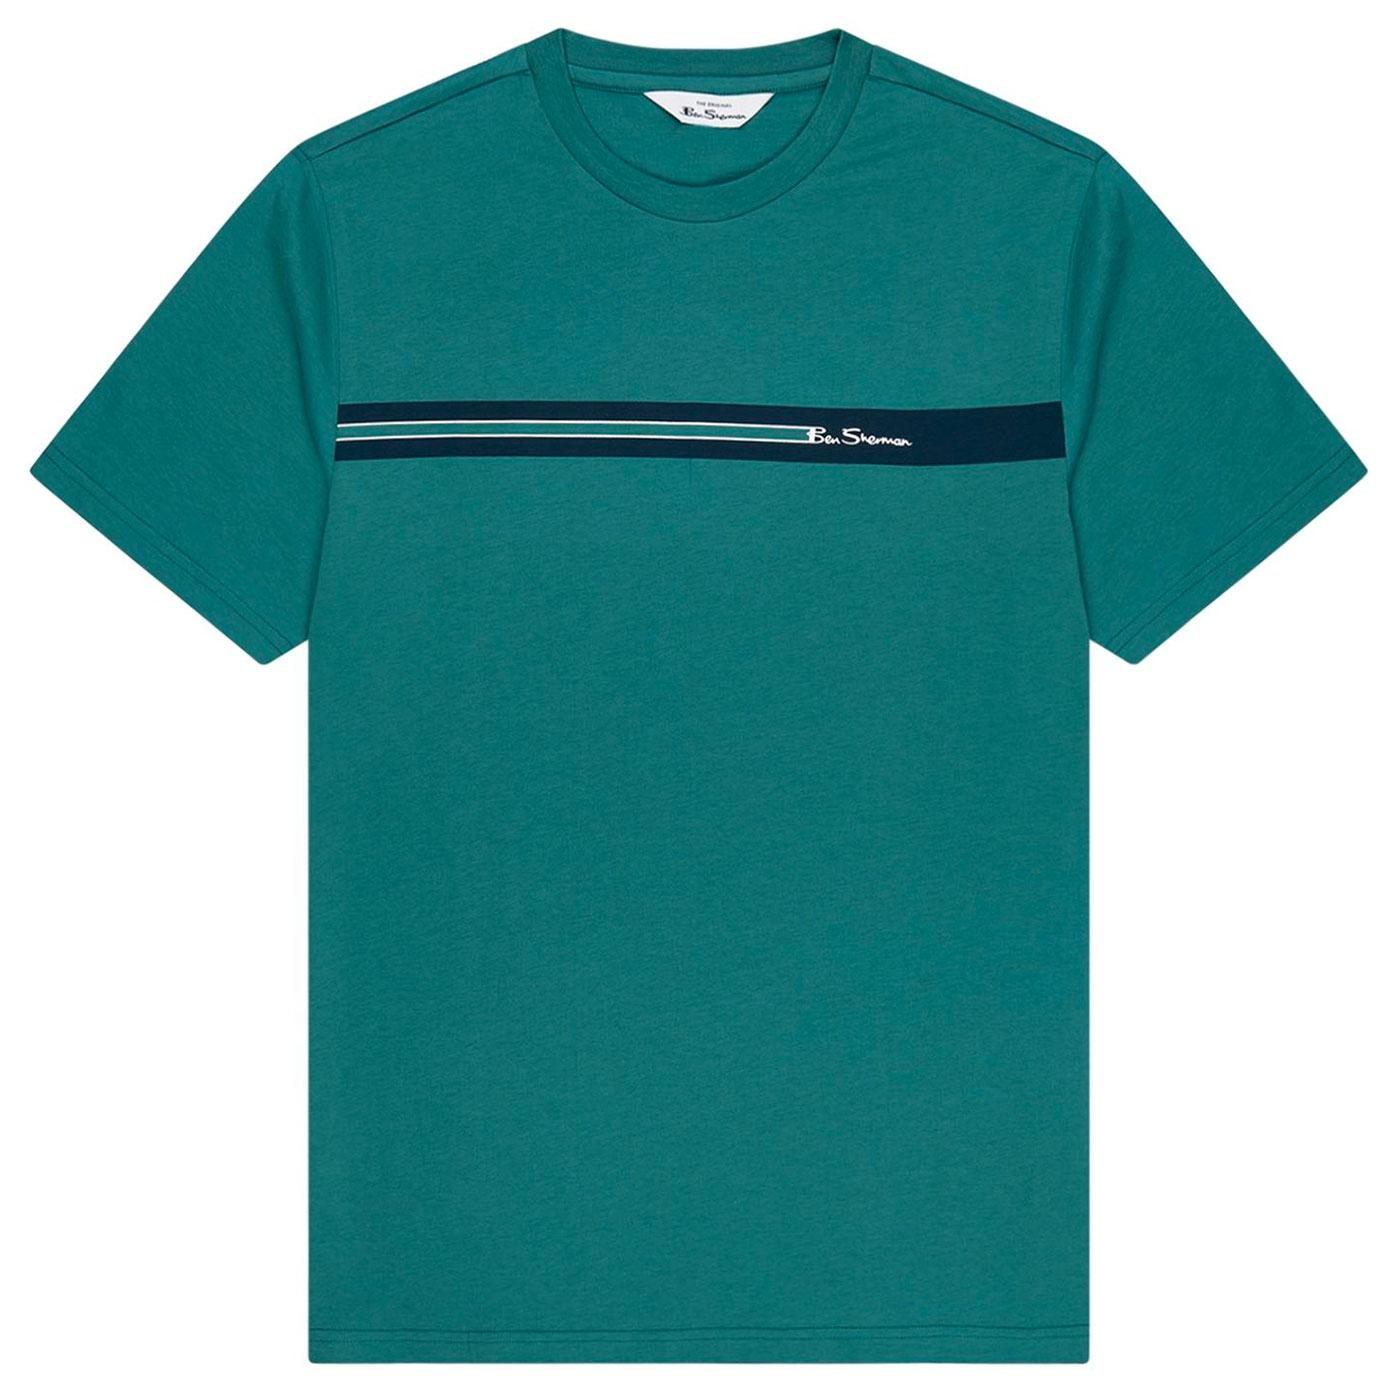 BEN SHERMAN Retro 90s Chest Stripe Tee in Teal